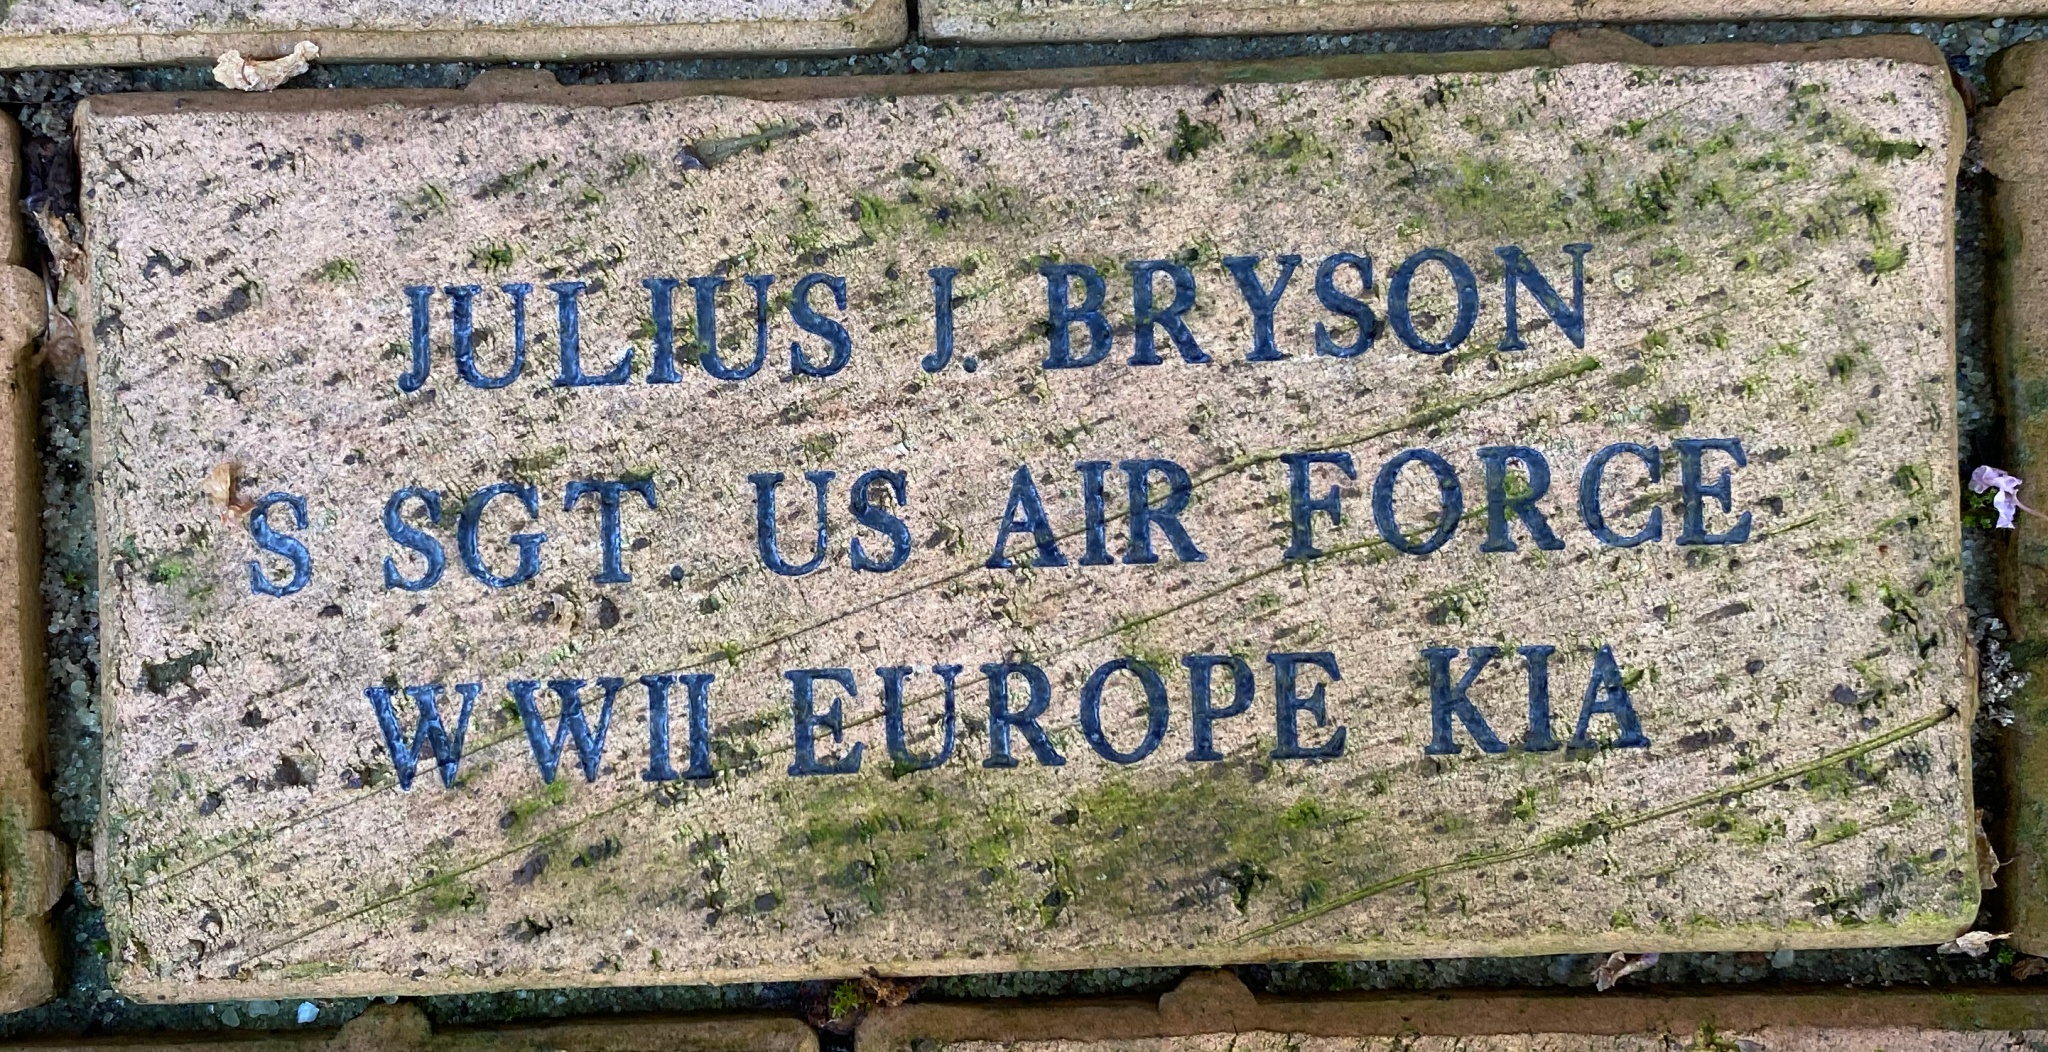 JULIUS J. BRYSON S SGT US AIR FORCE WWII EUROPE KIA